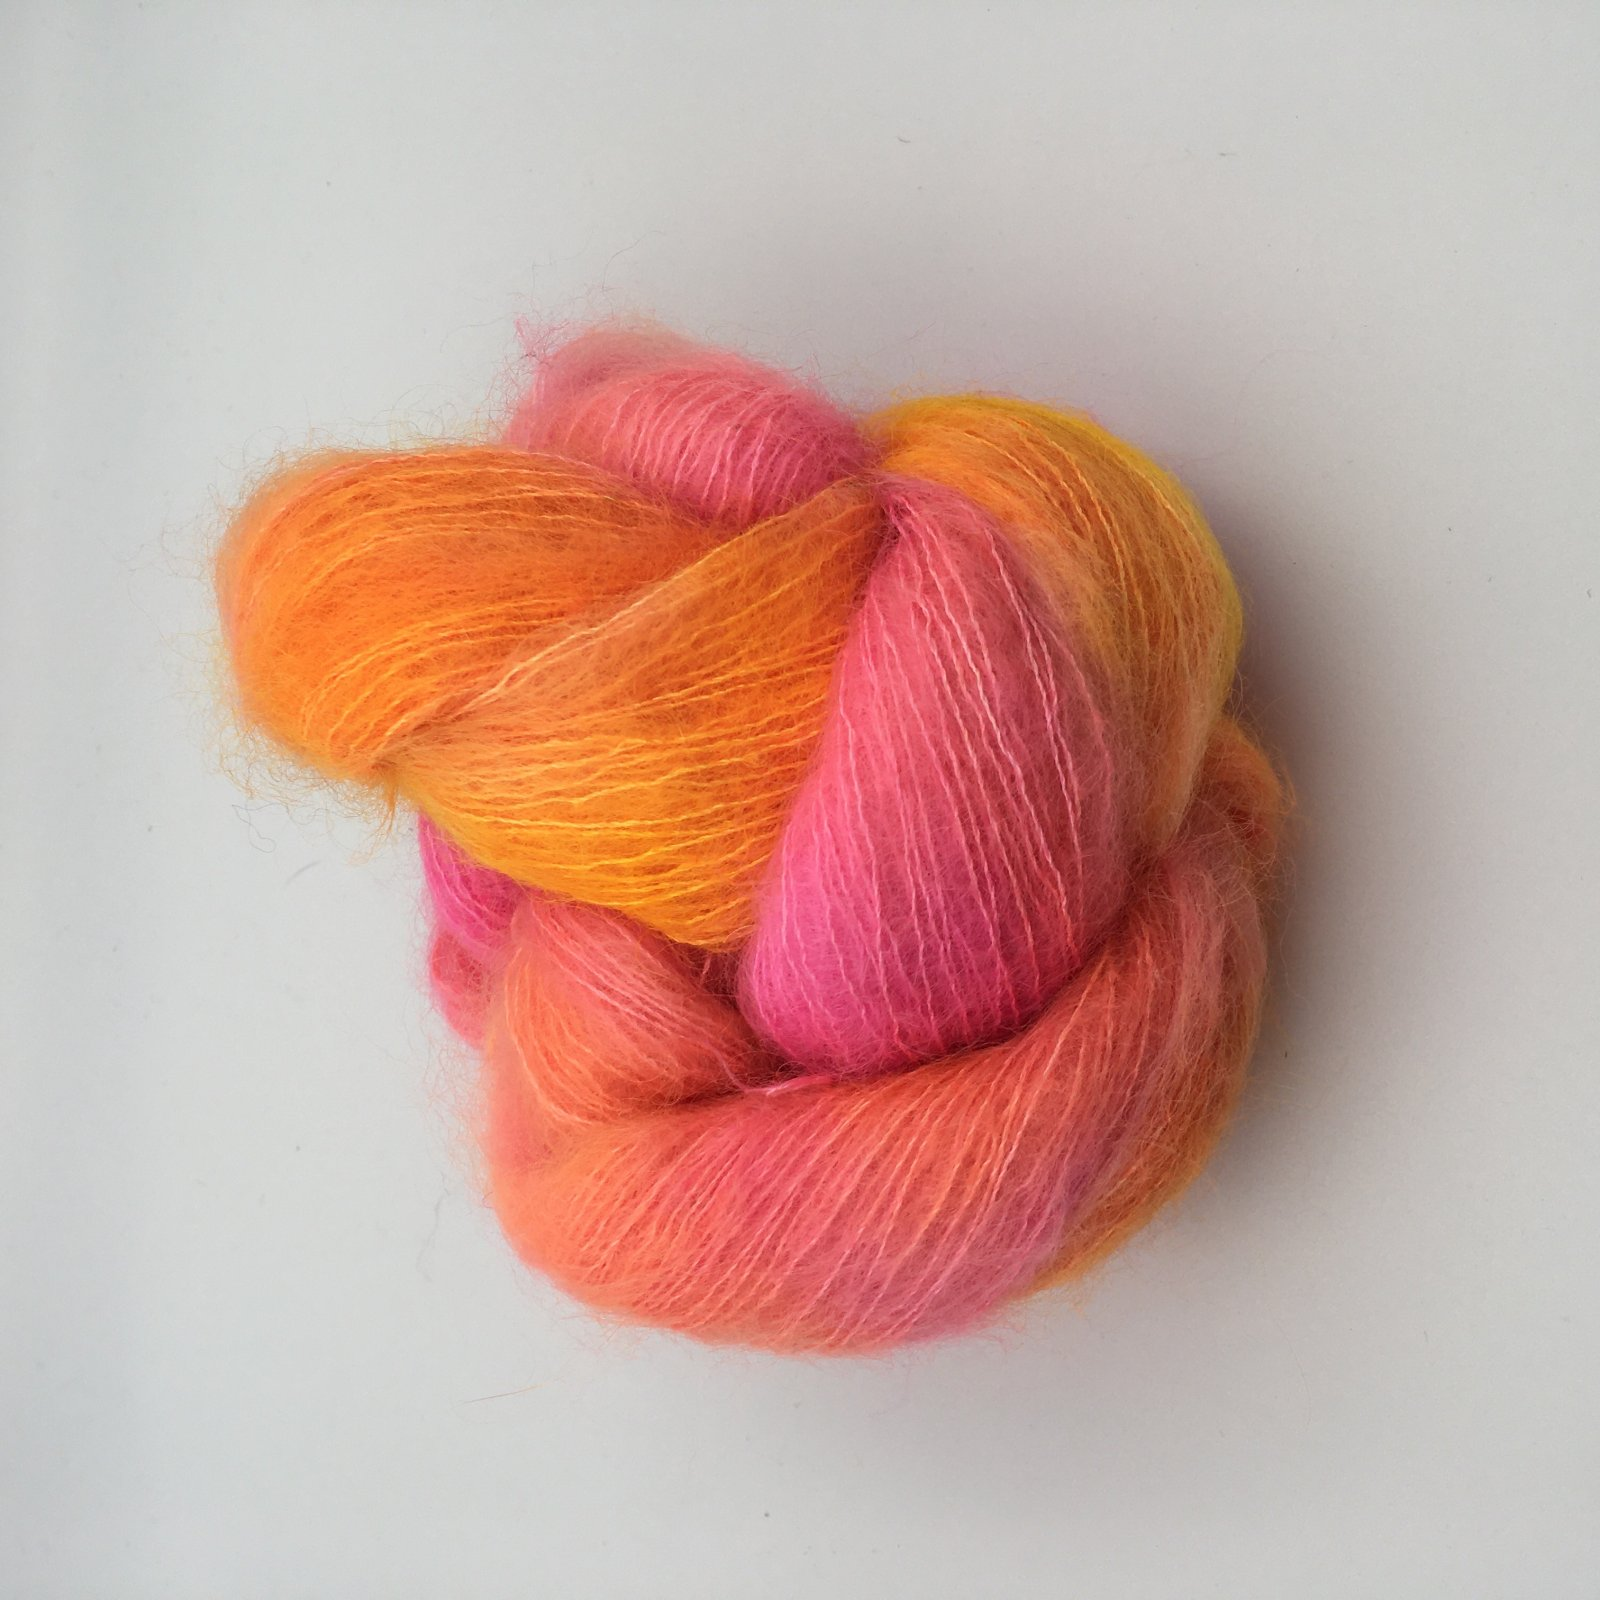 Trippin' with Dixi Fiber Co. Hetta - When It Comes Together STEVENBE EXCLUSIVE